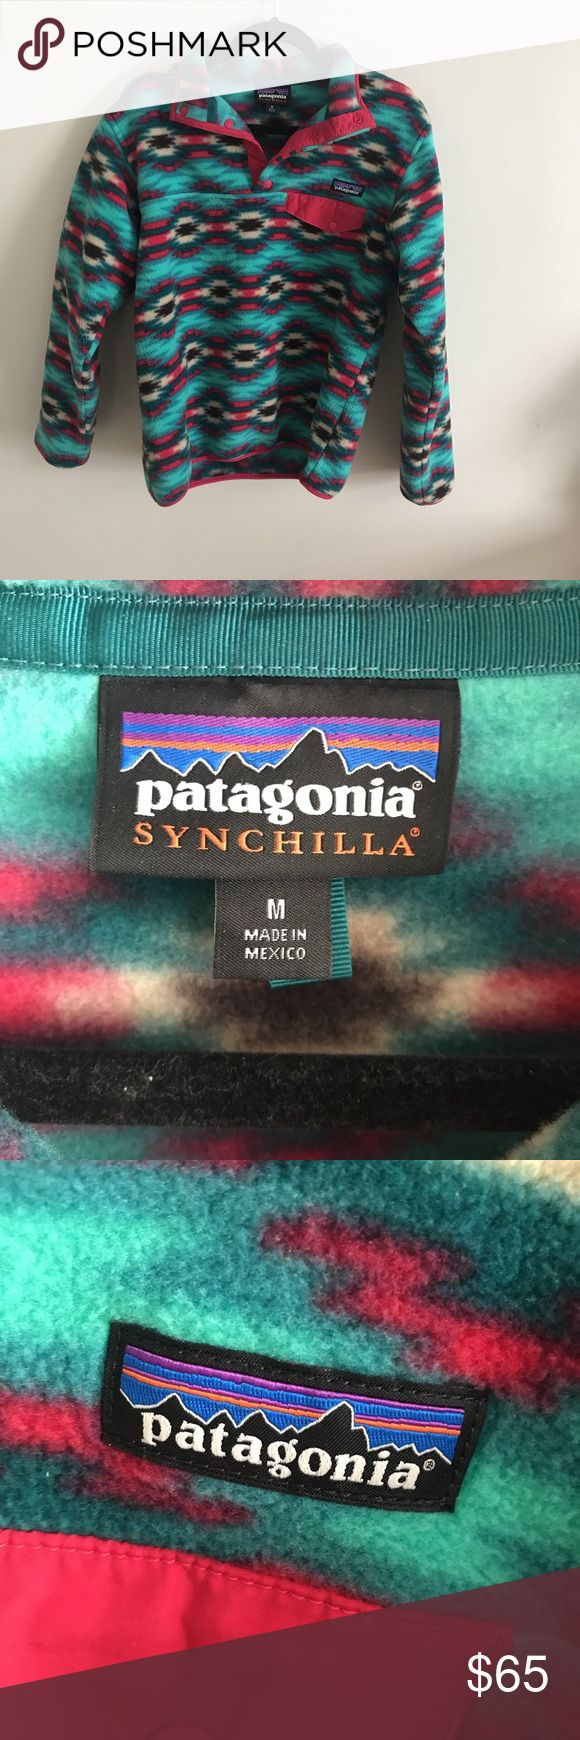 Patagonia Synchilla Gorgeous Patagonia Synchilla Jacket! I love this but it is sadly not my style. Looking to give it a new home! Patagonia Jackets & Coats